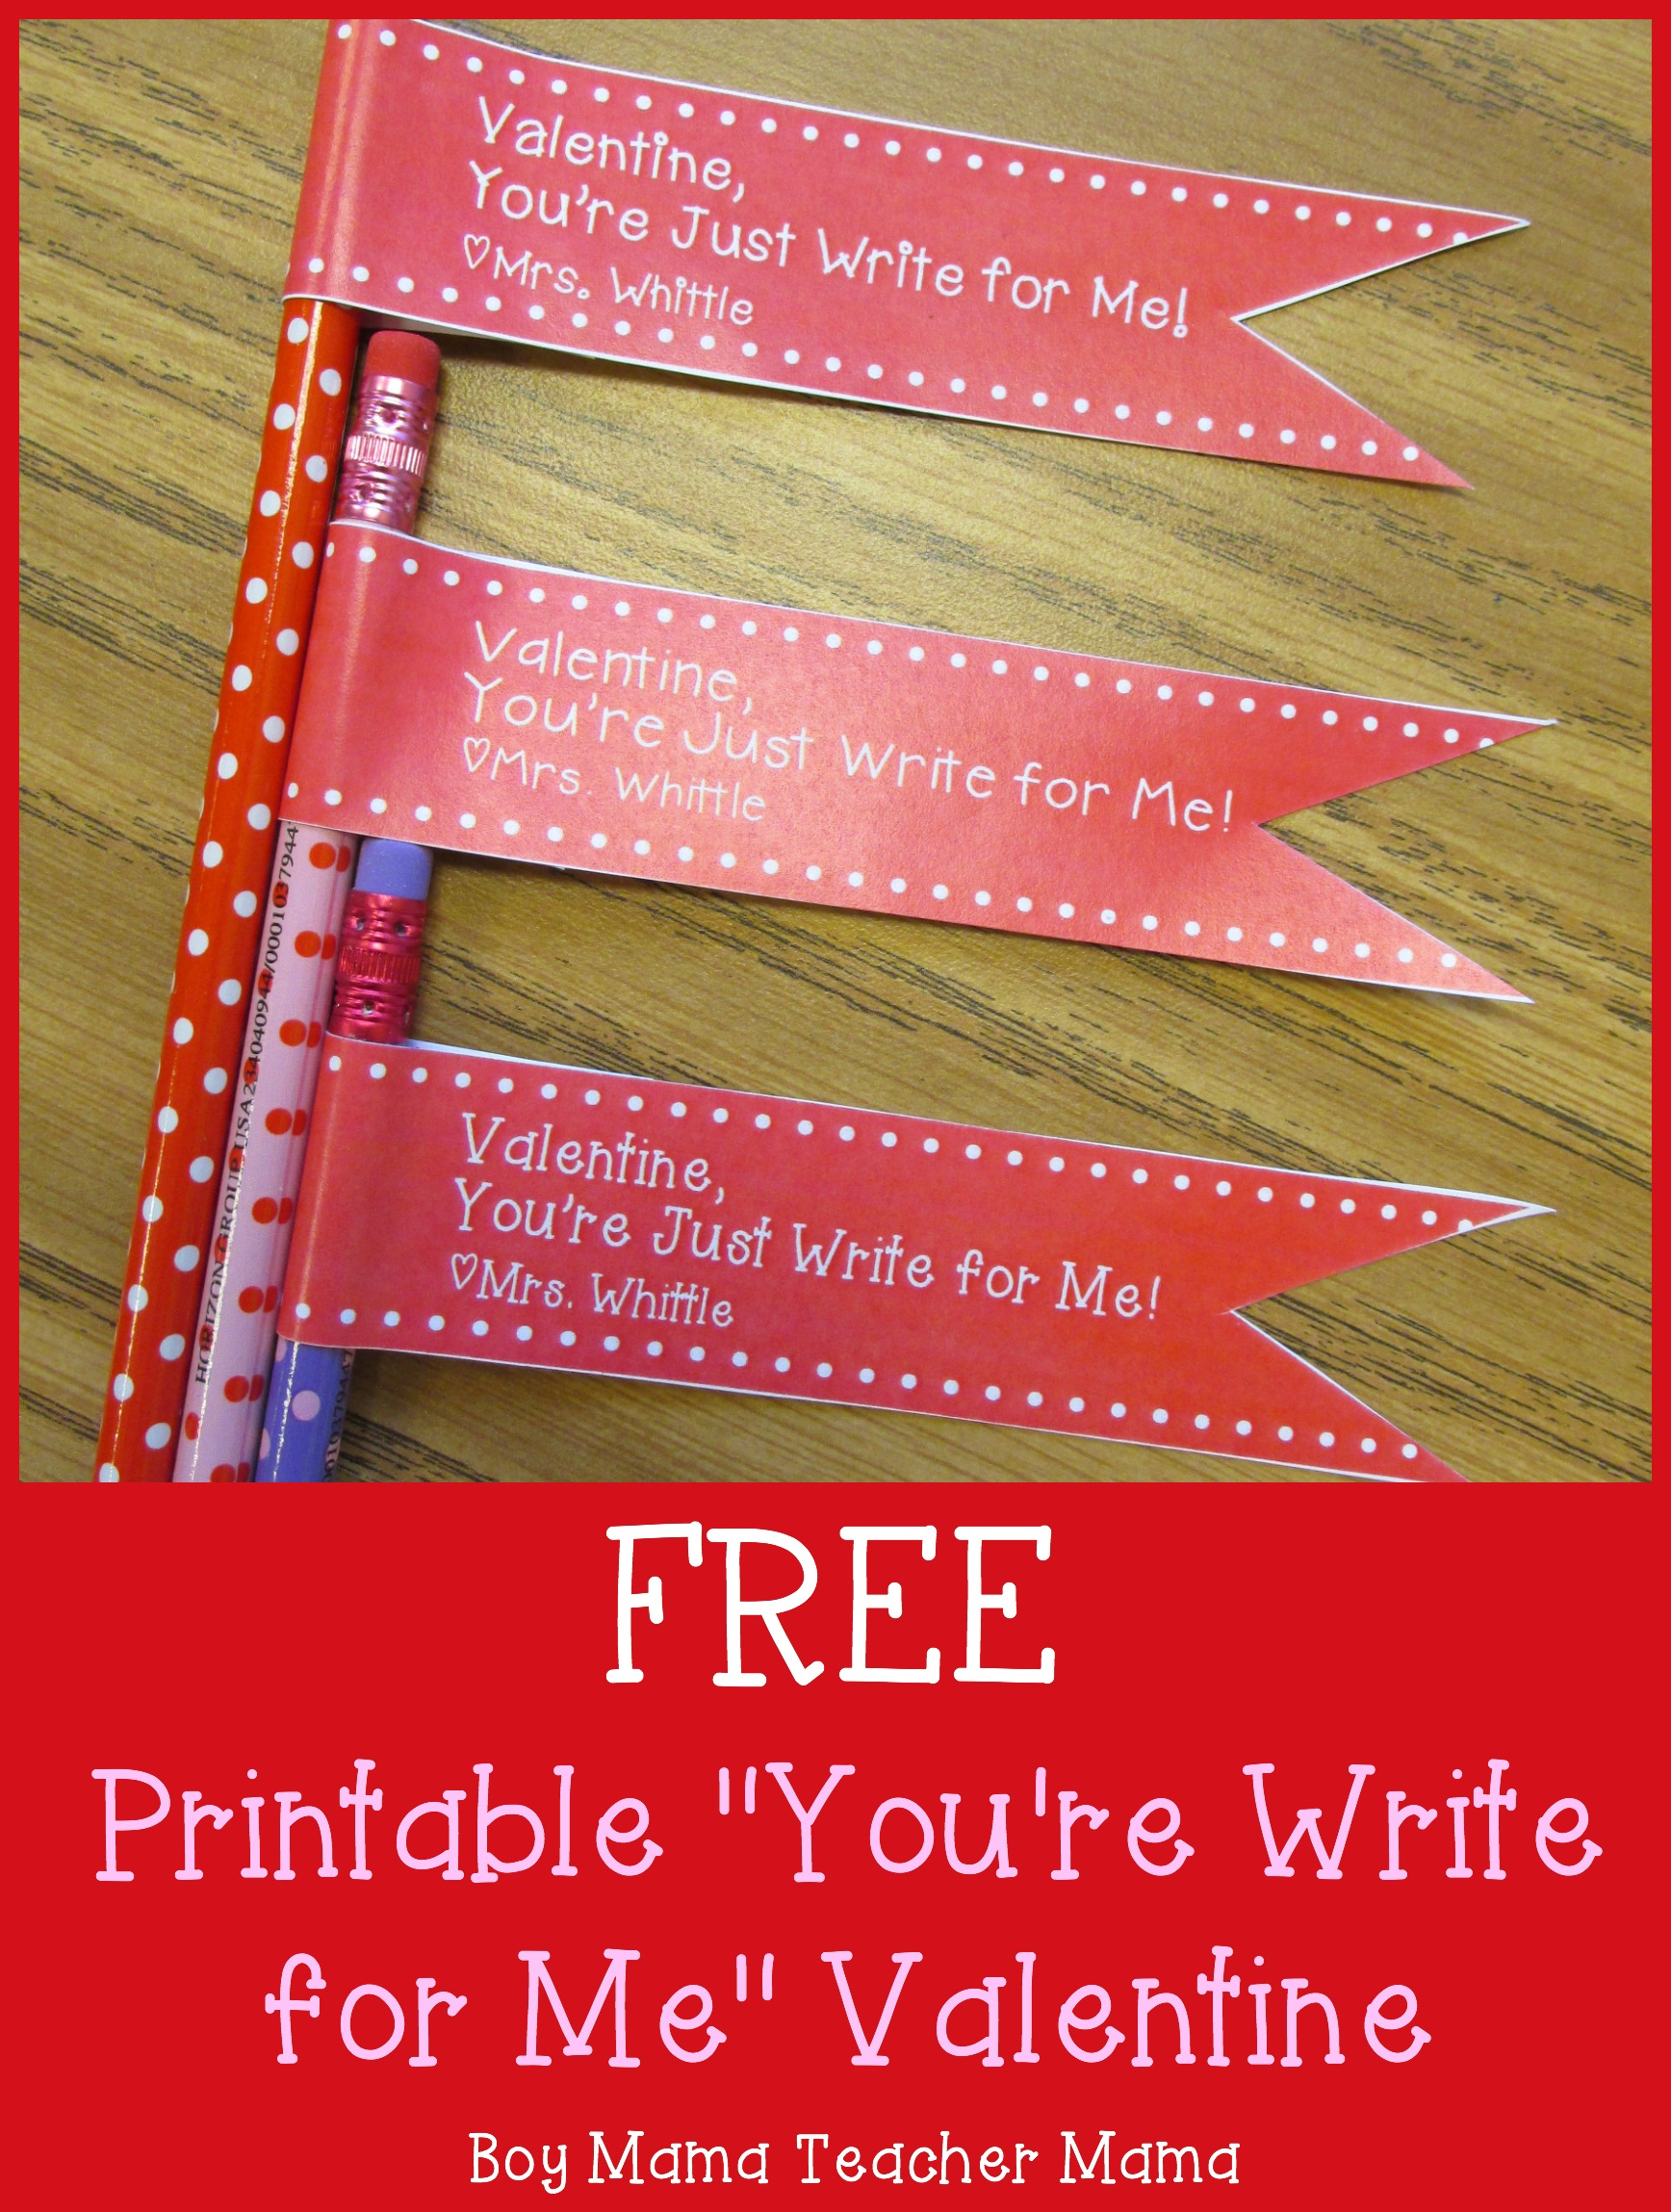 Teacher Mama FREE Printable Youre Write For Me